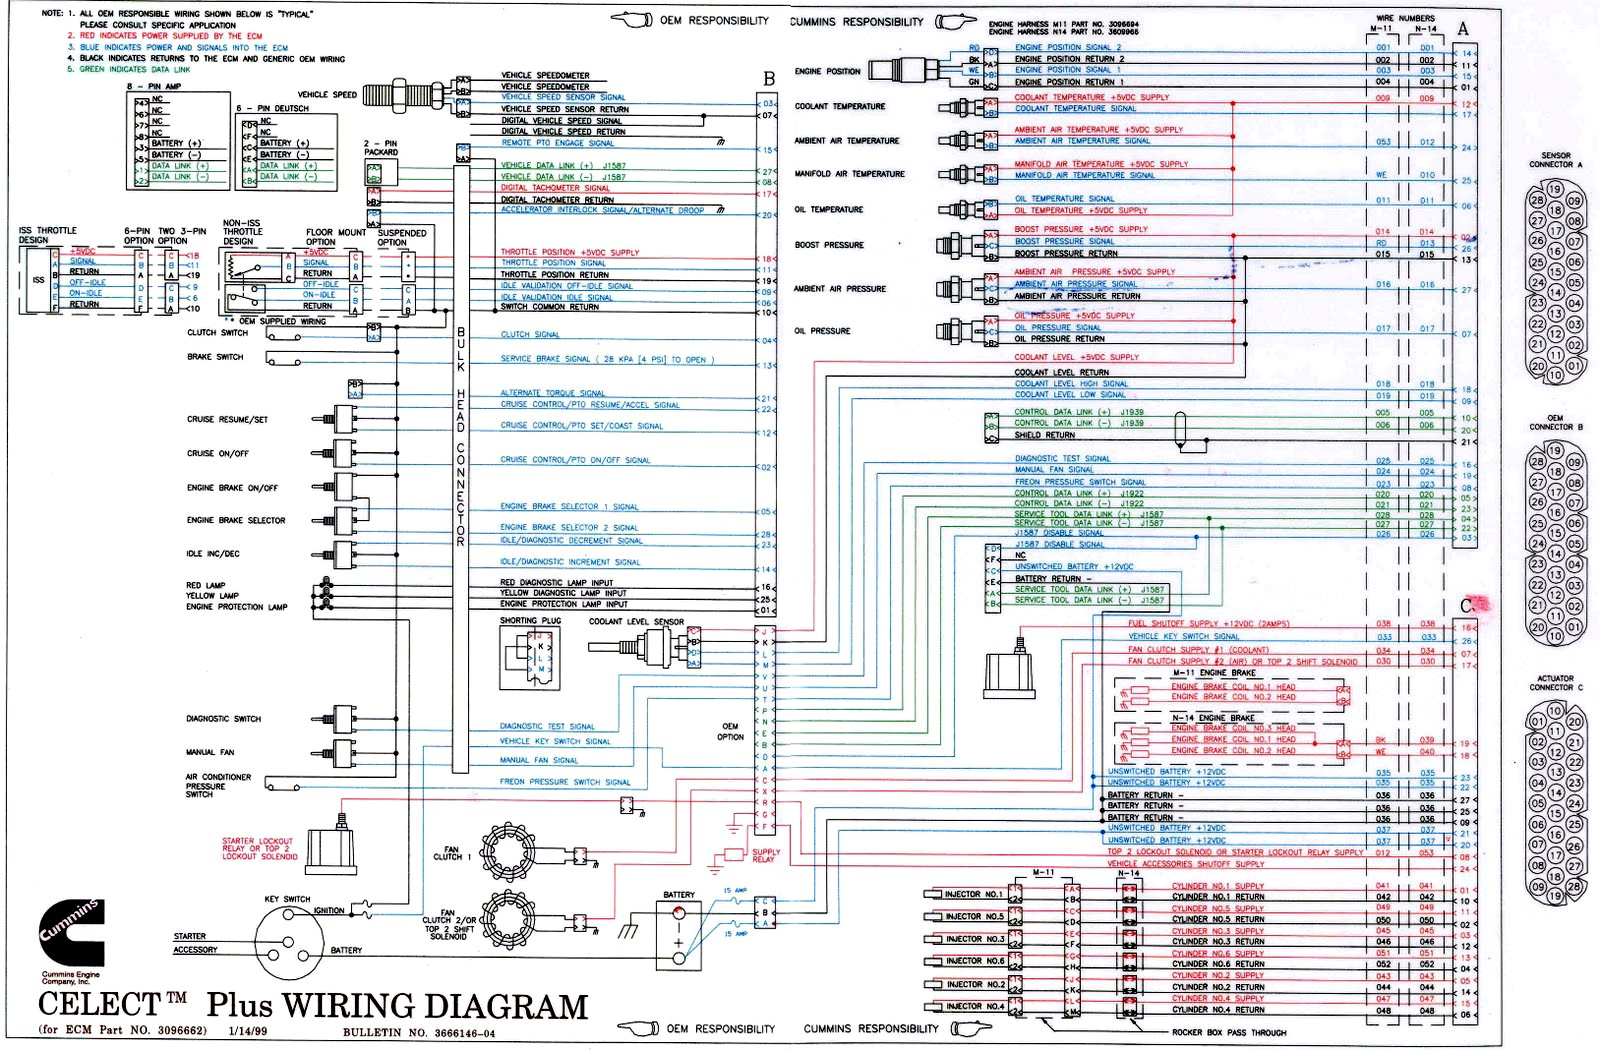 emc wiring diagrams cat c12 ecm wiring diagram cat image wiring diagram cat 70 pin ecm wiring diagram solidfonts